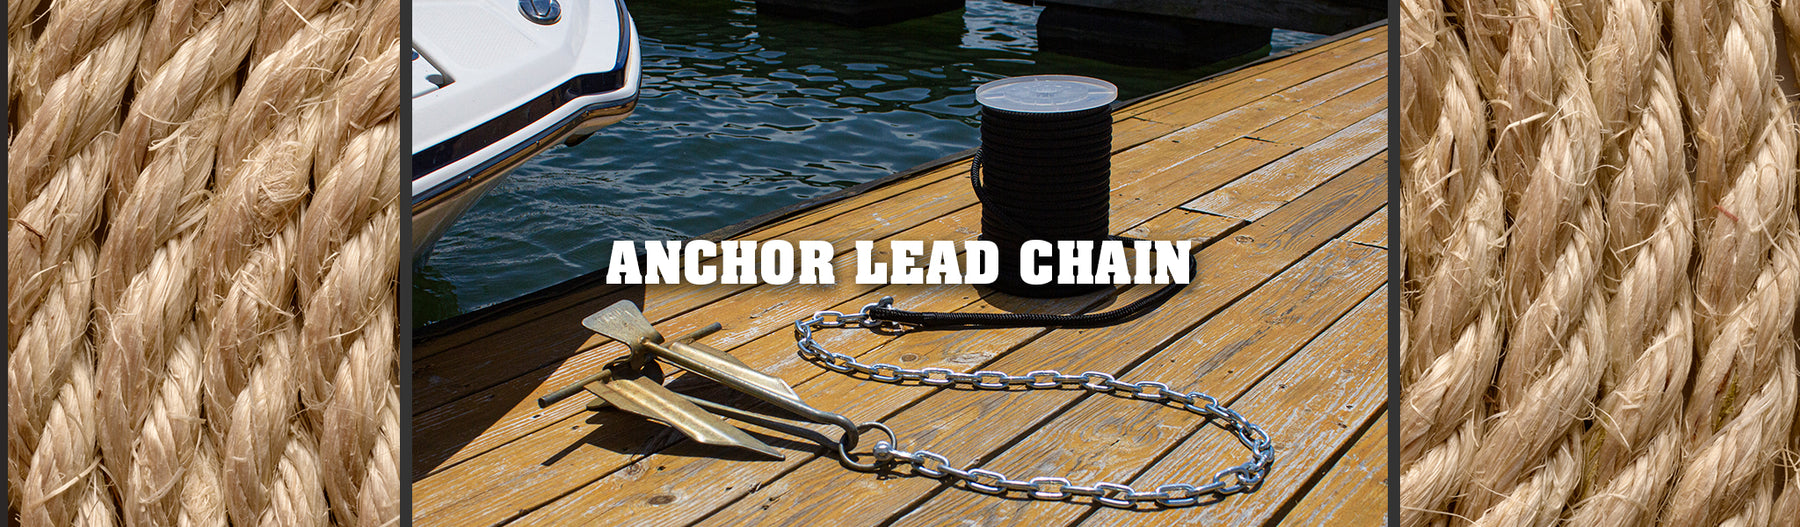 Product Feature: Anchor Lead Chain